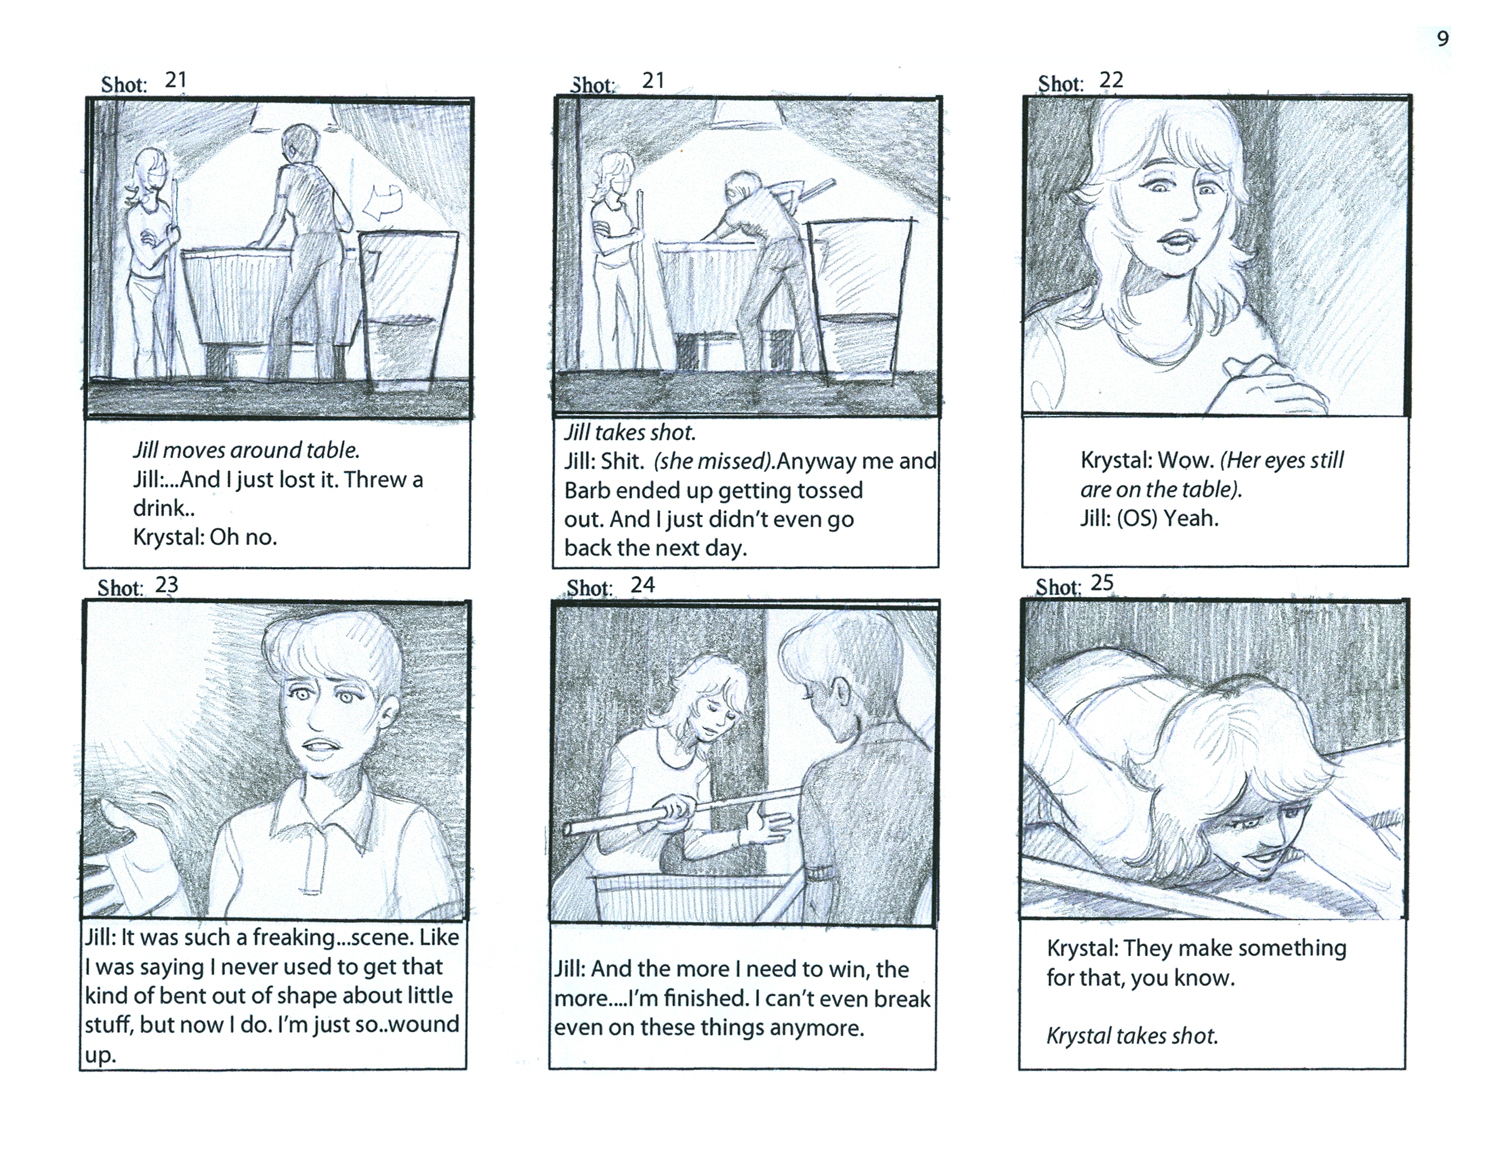 Example 4 - Storyboard